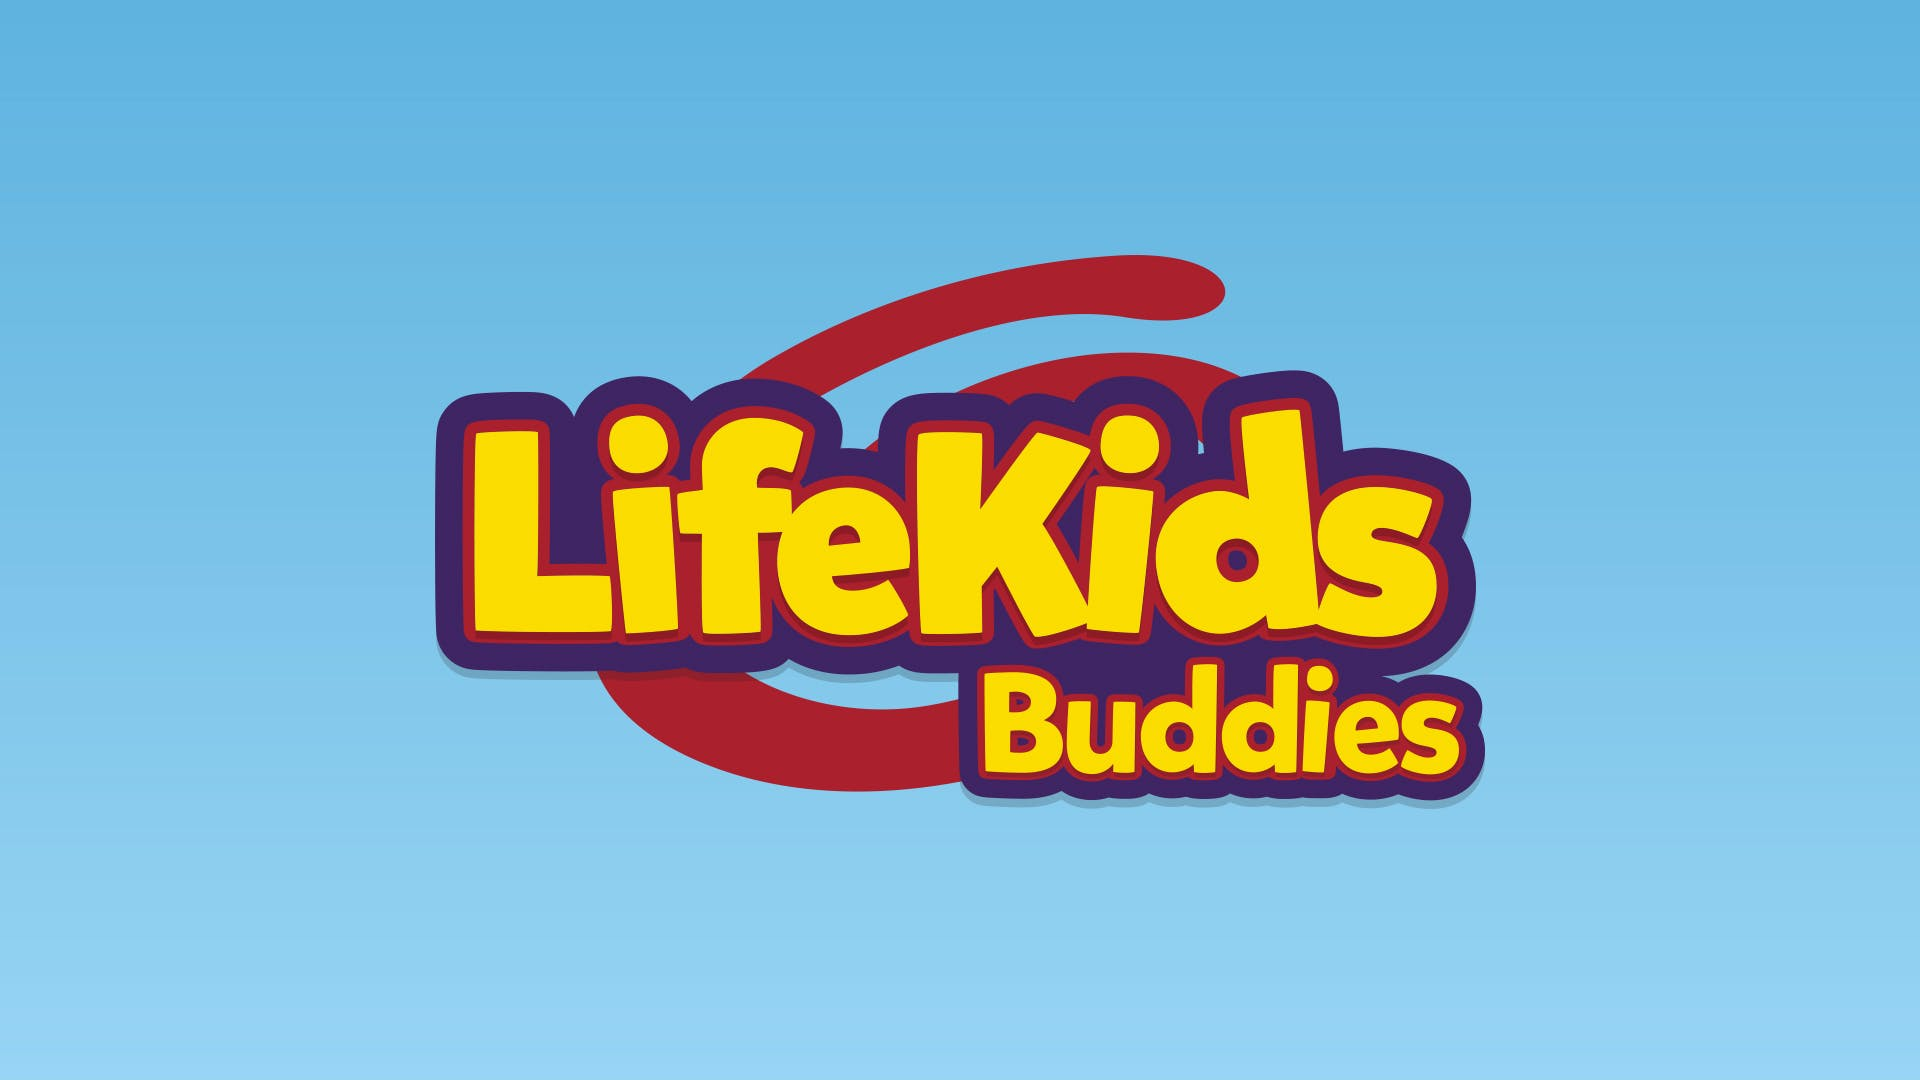 Welcome to LifeKids Buddies